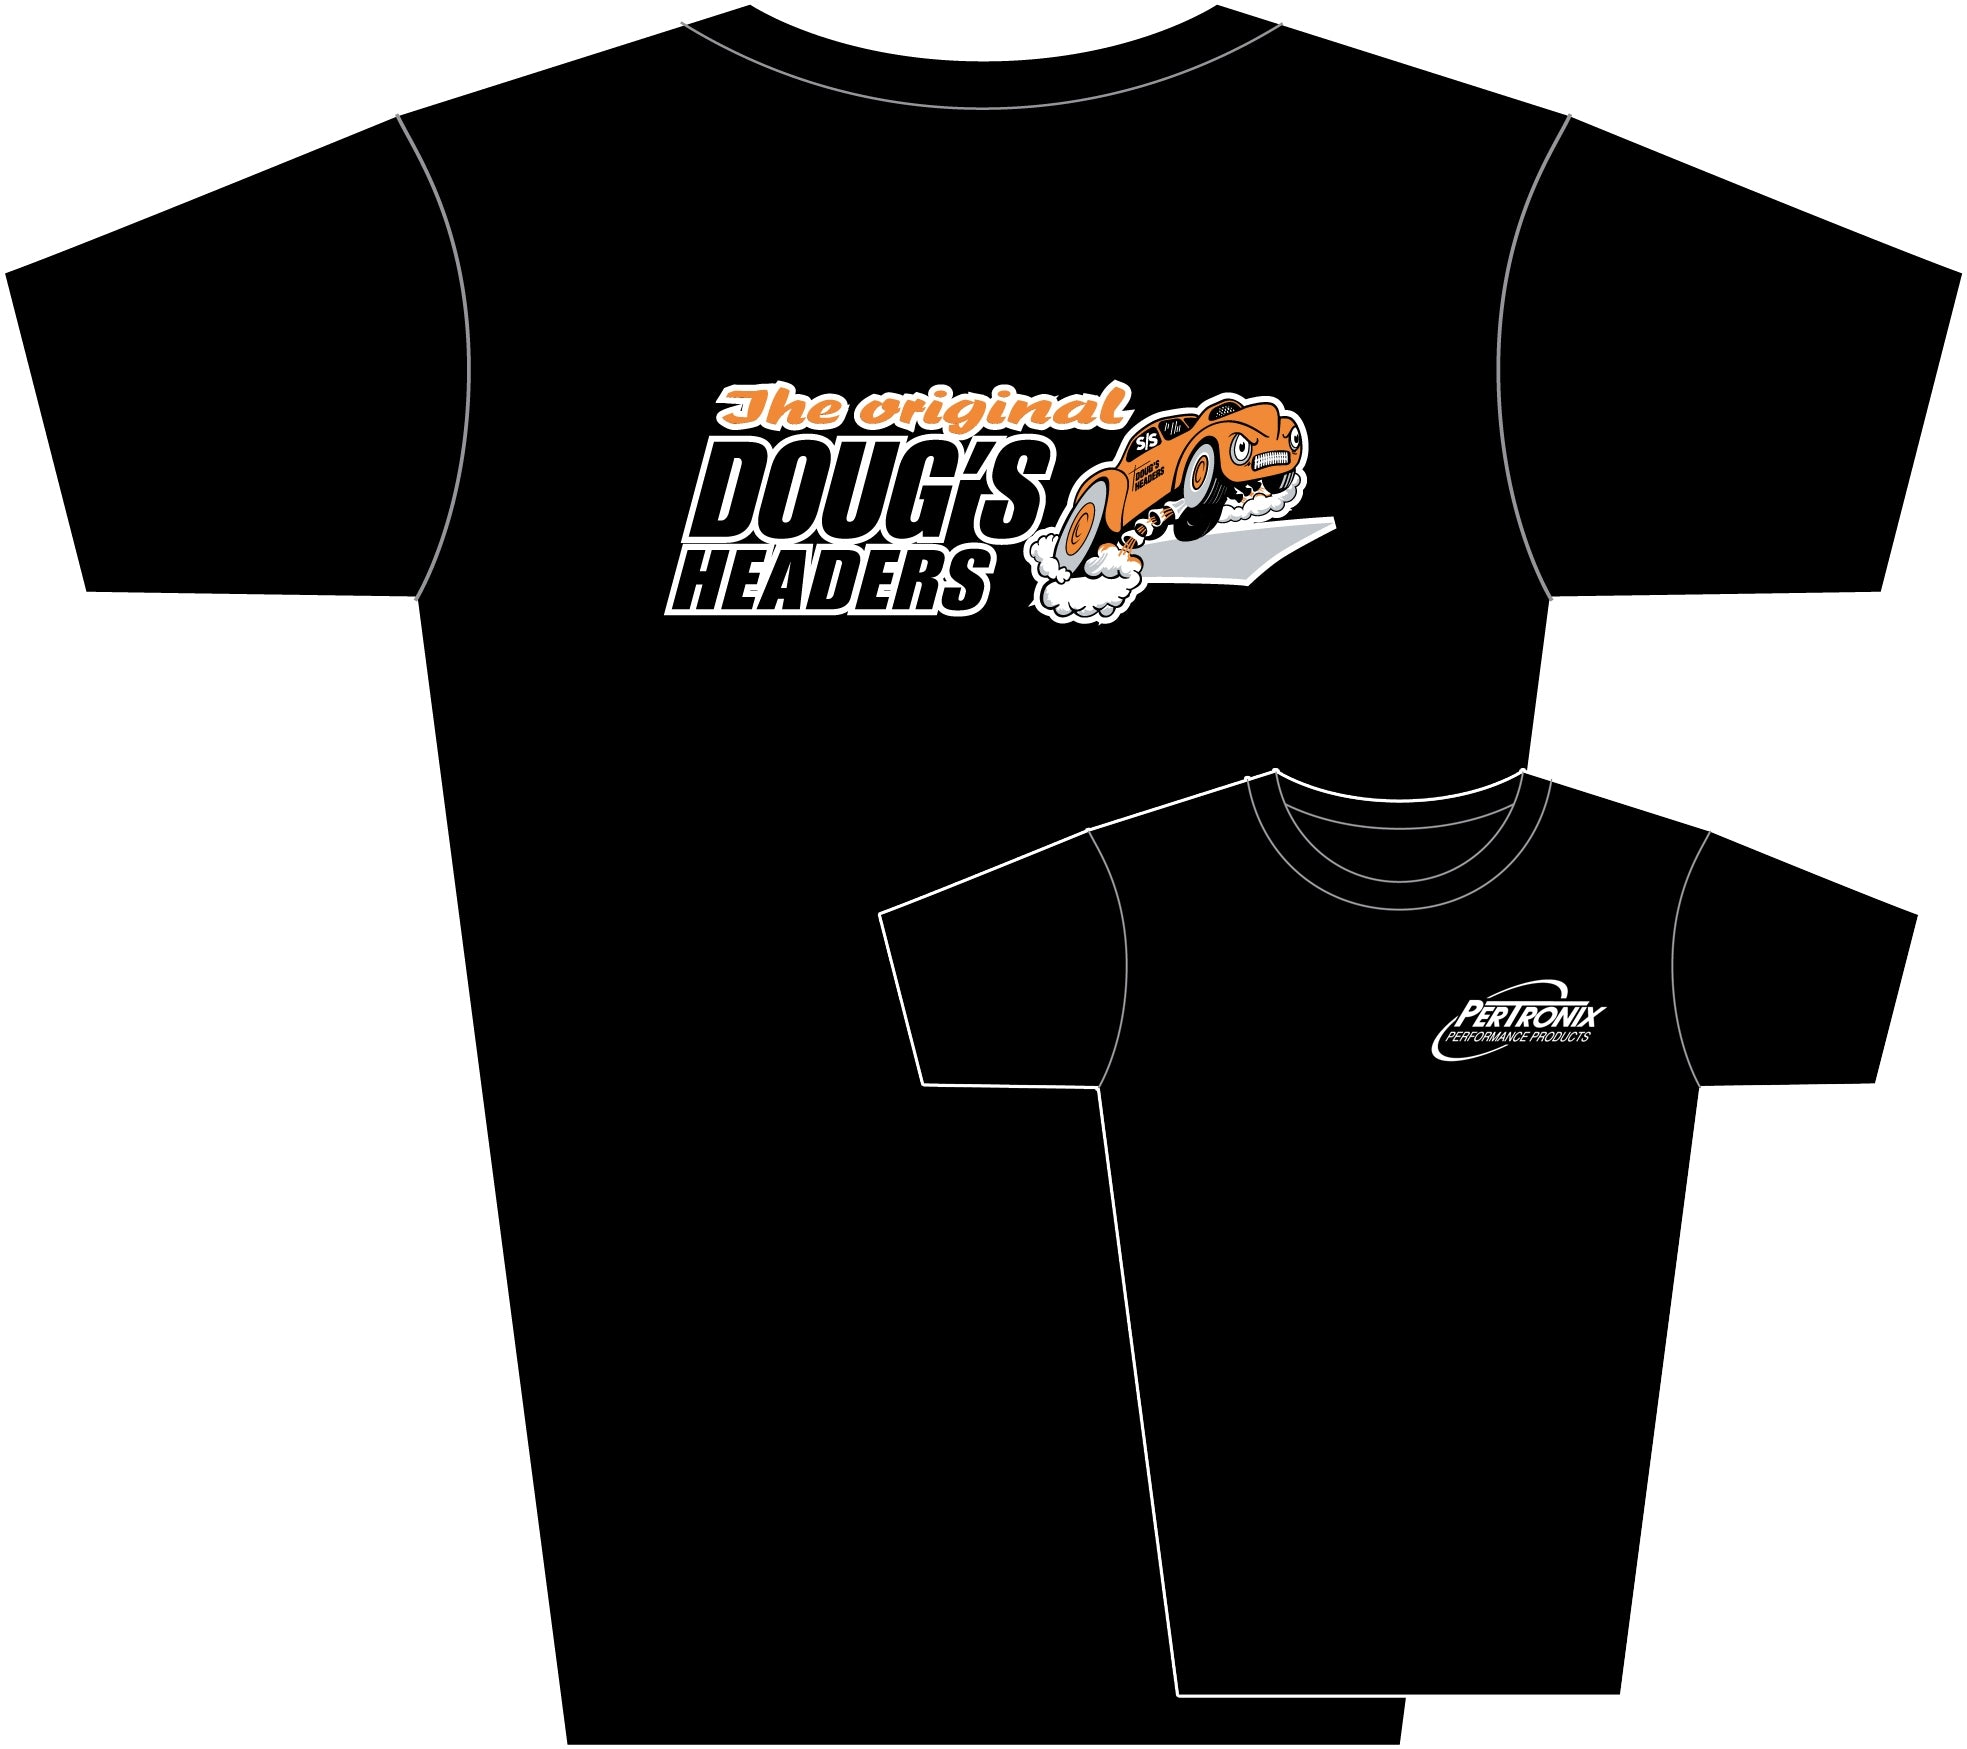 Doug's Headers TS201 Tee Shirt Black Medium